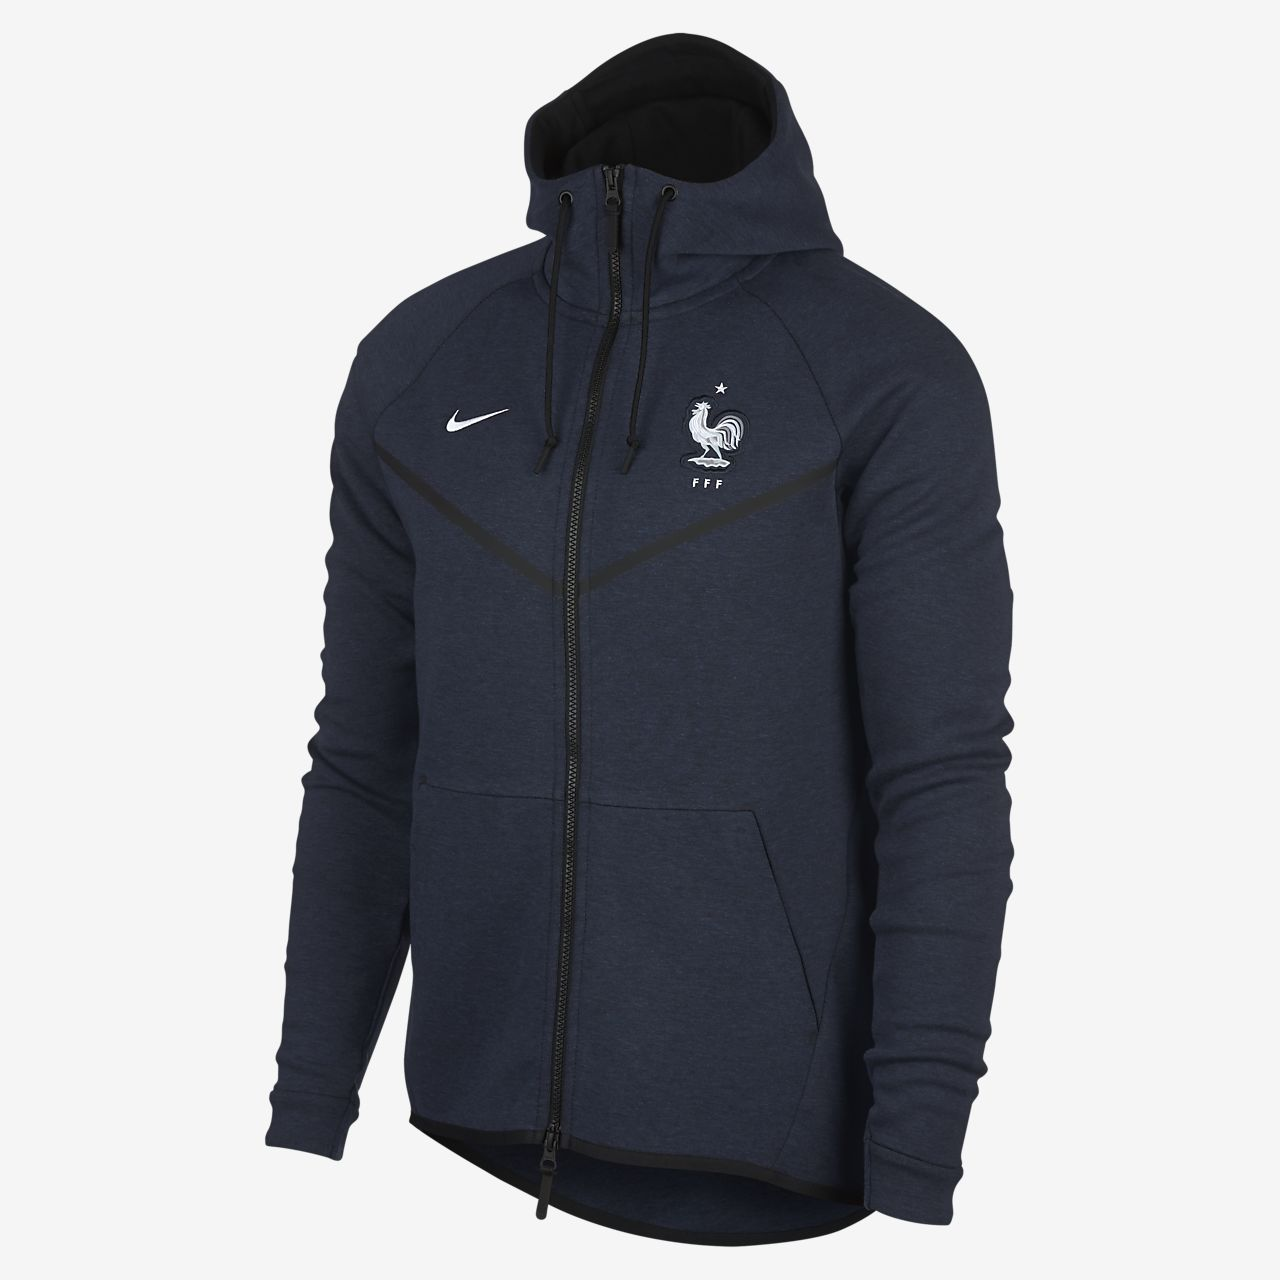 FFF Tech Fleece Windrunner Men's Jacket